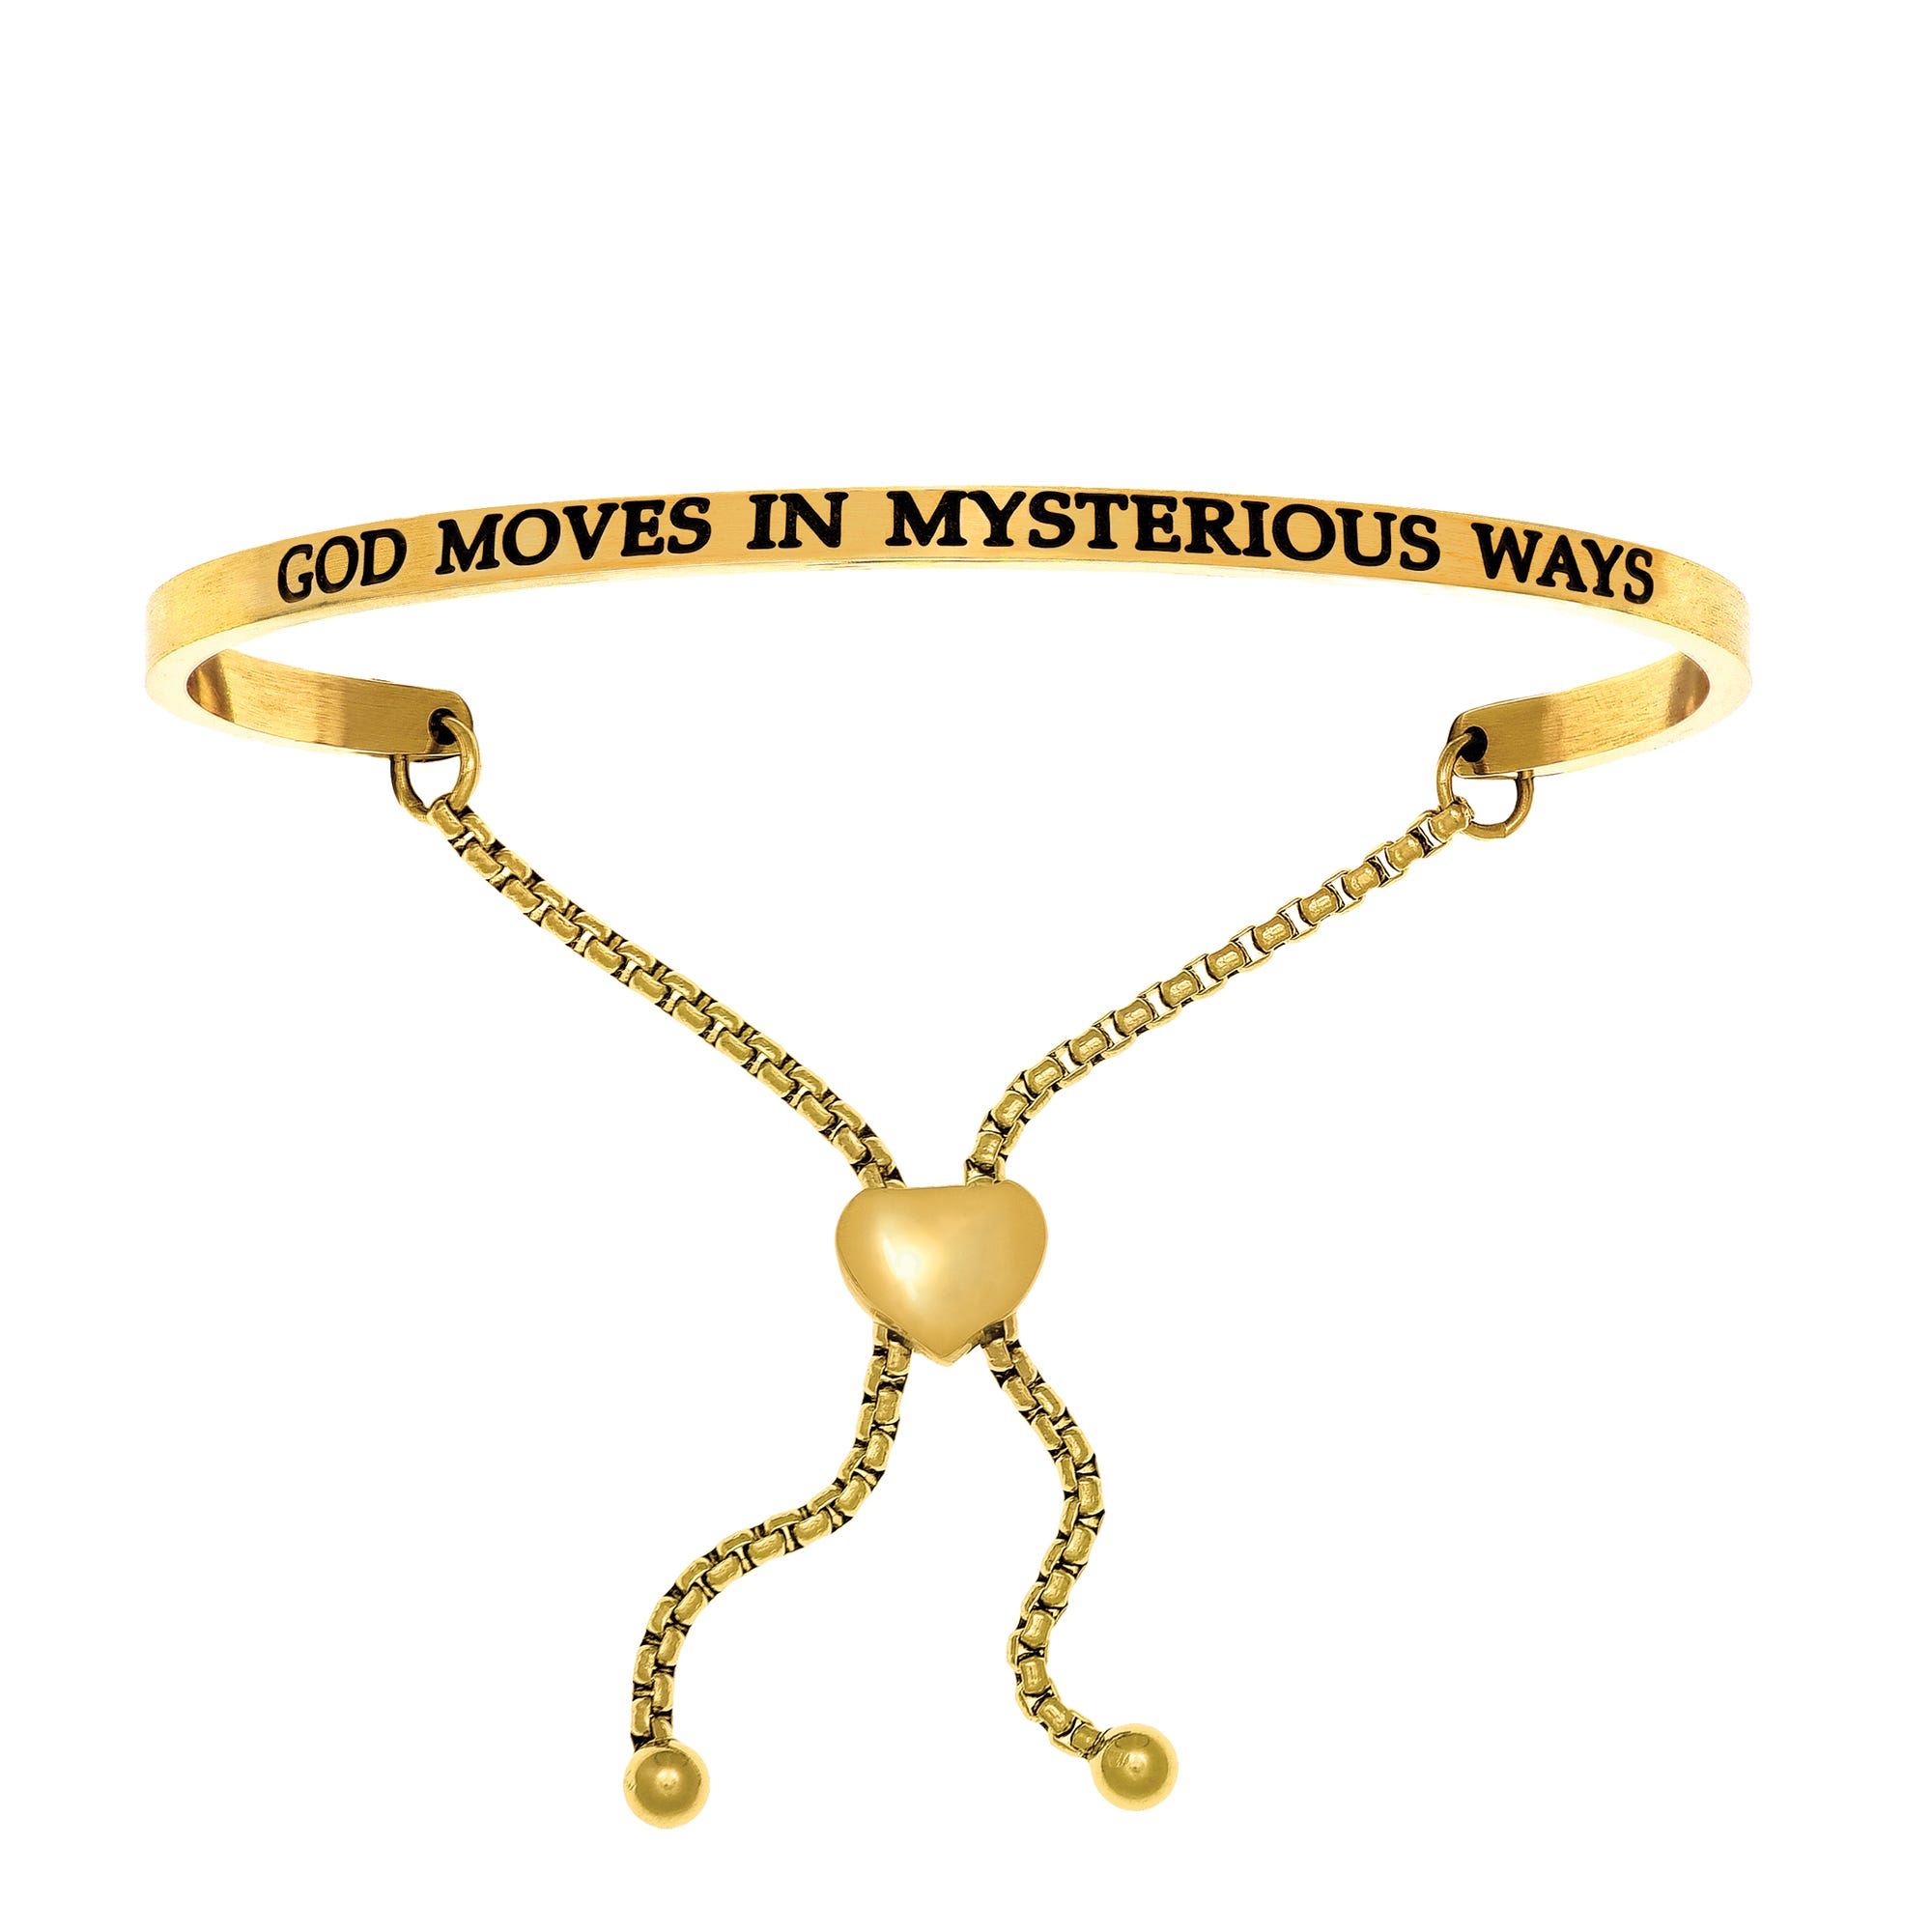 God Moves In Mysterious Ways. Intuitions Bolo Bracelet in Yellow Stainless Steel